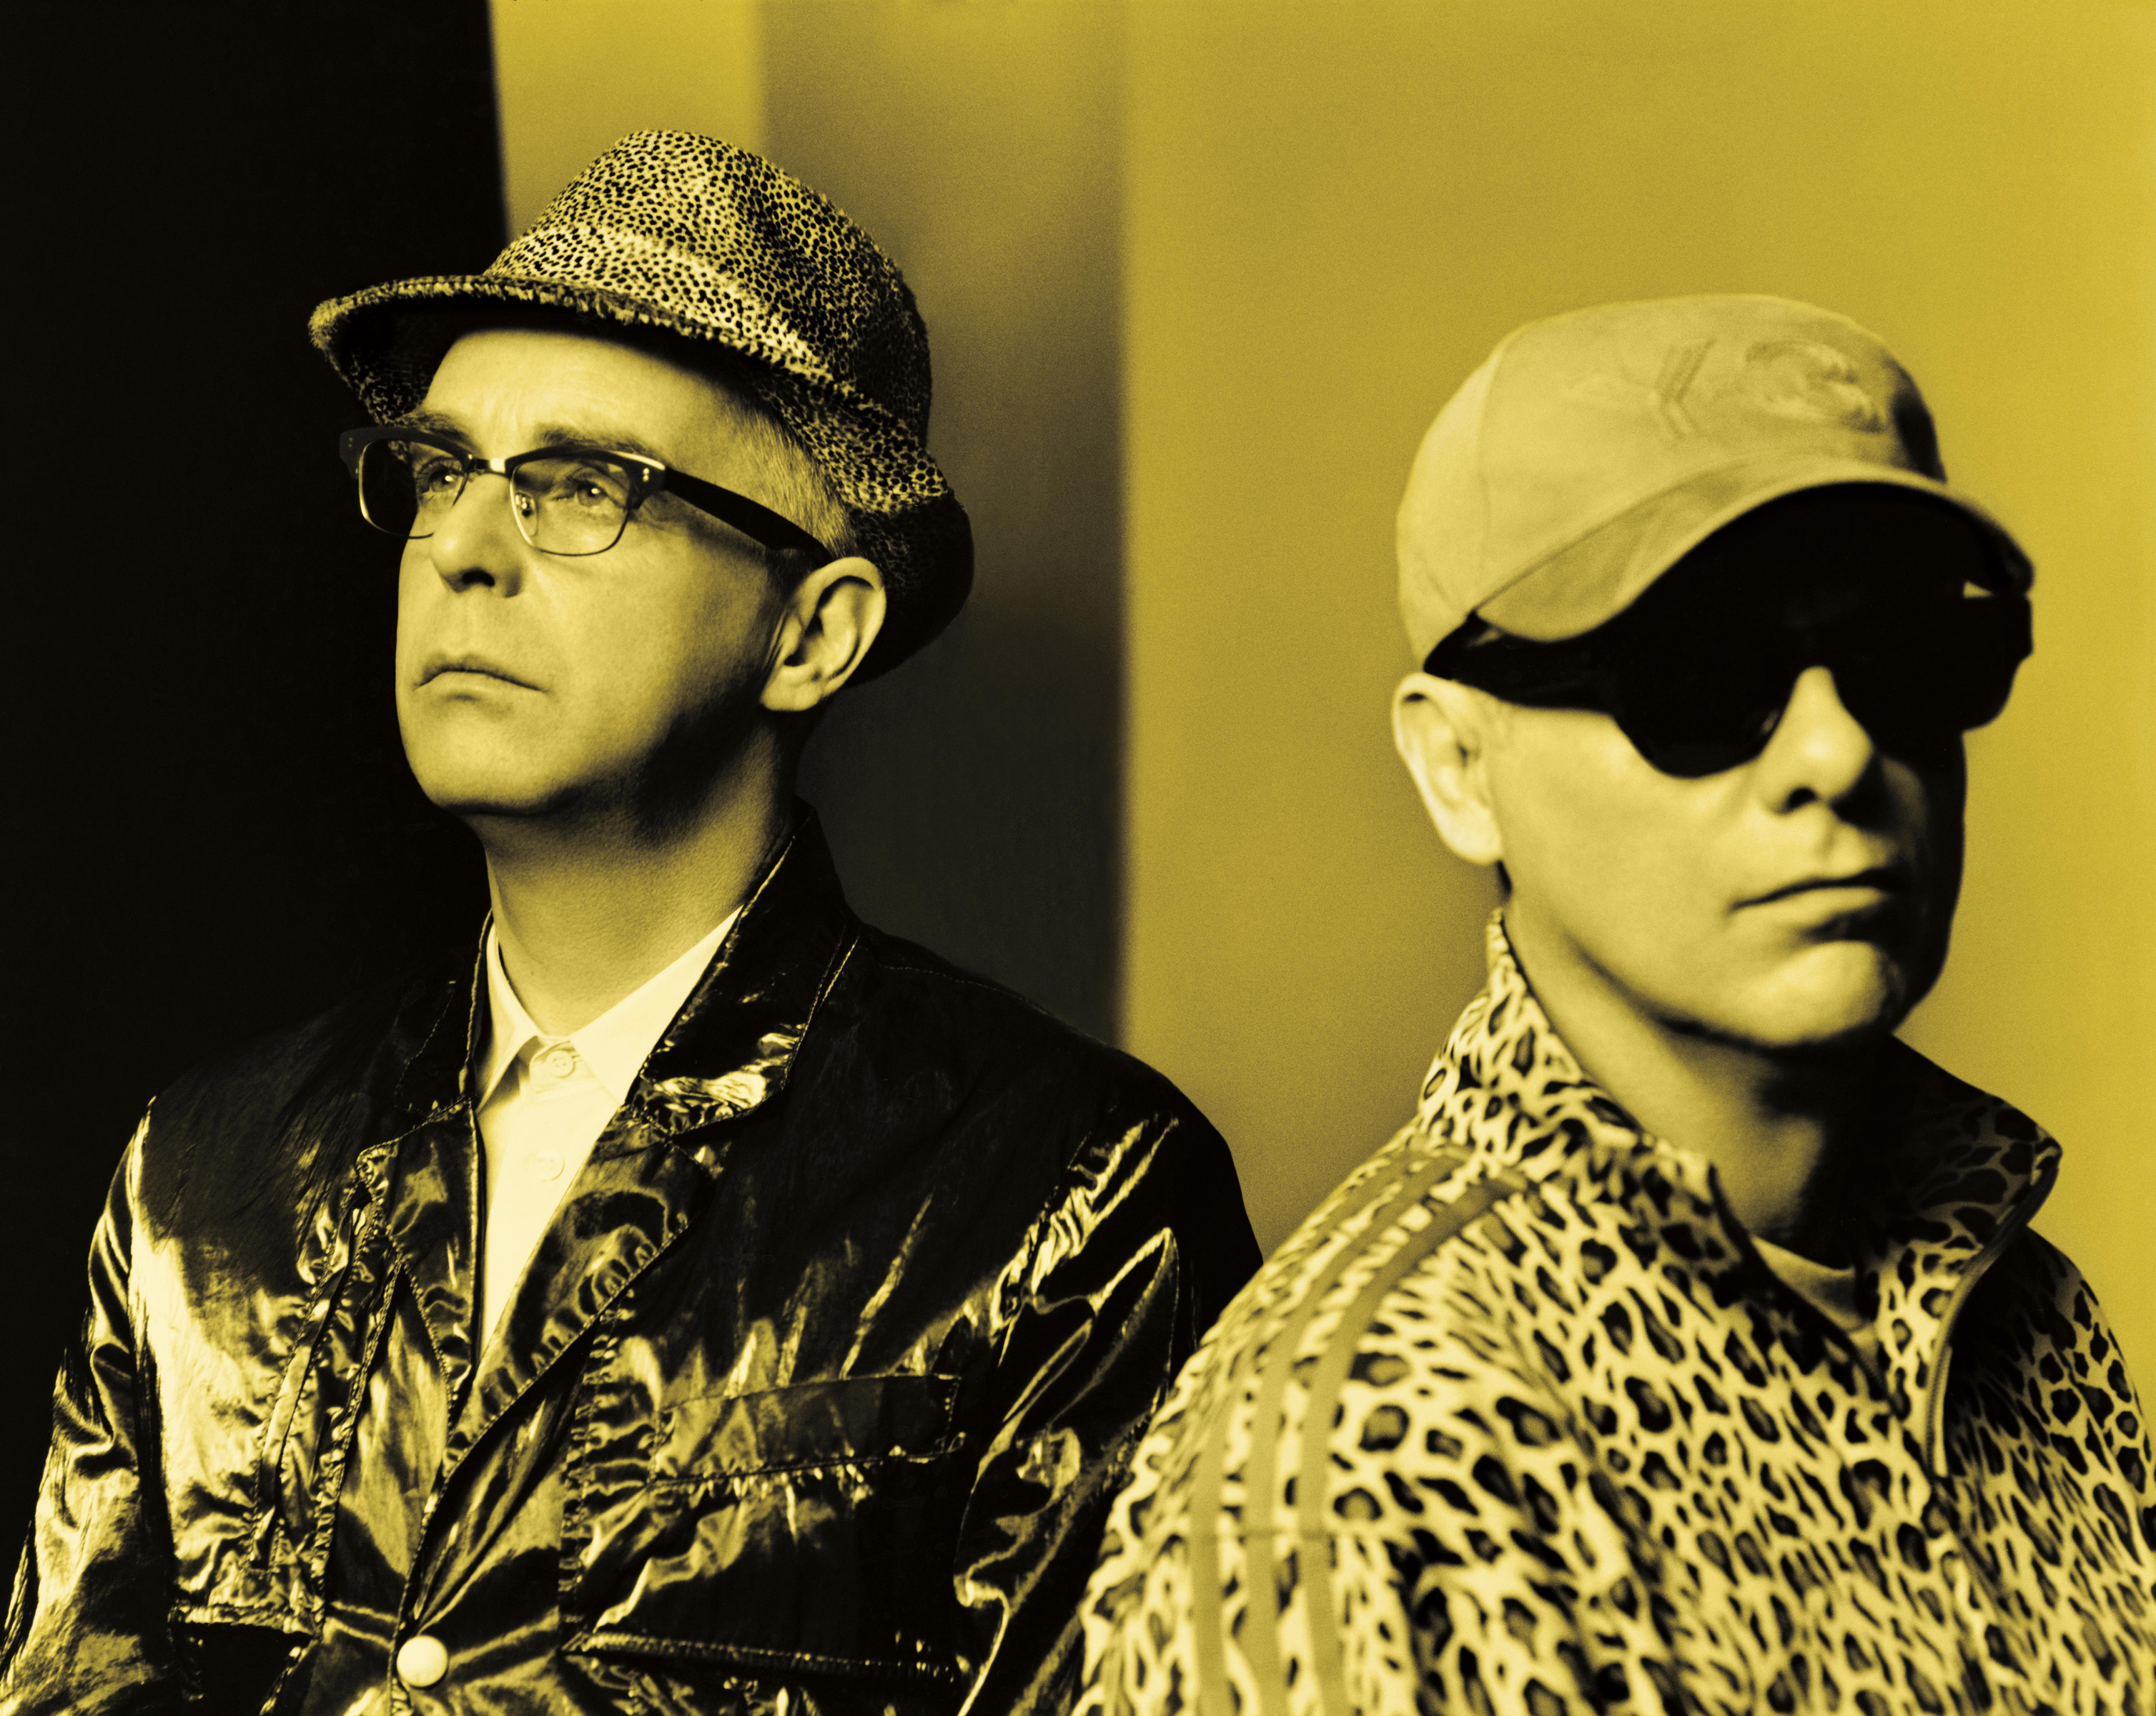 Pet Shop Boys unleash month-long Pandemonium Tour on North America